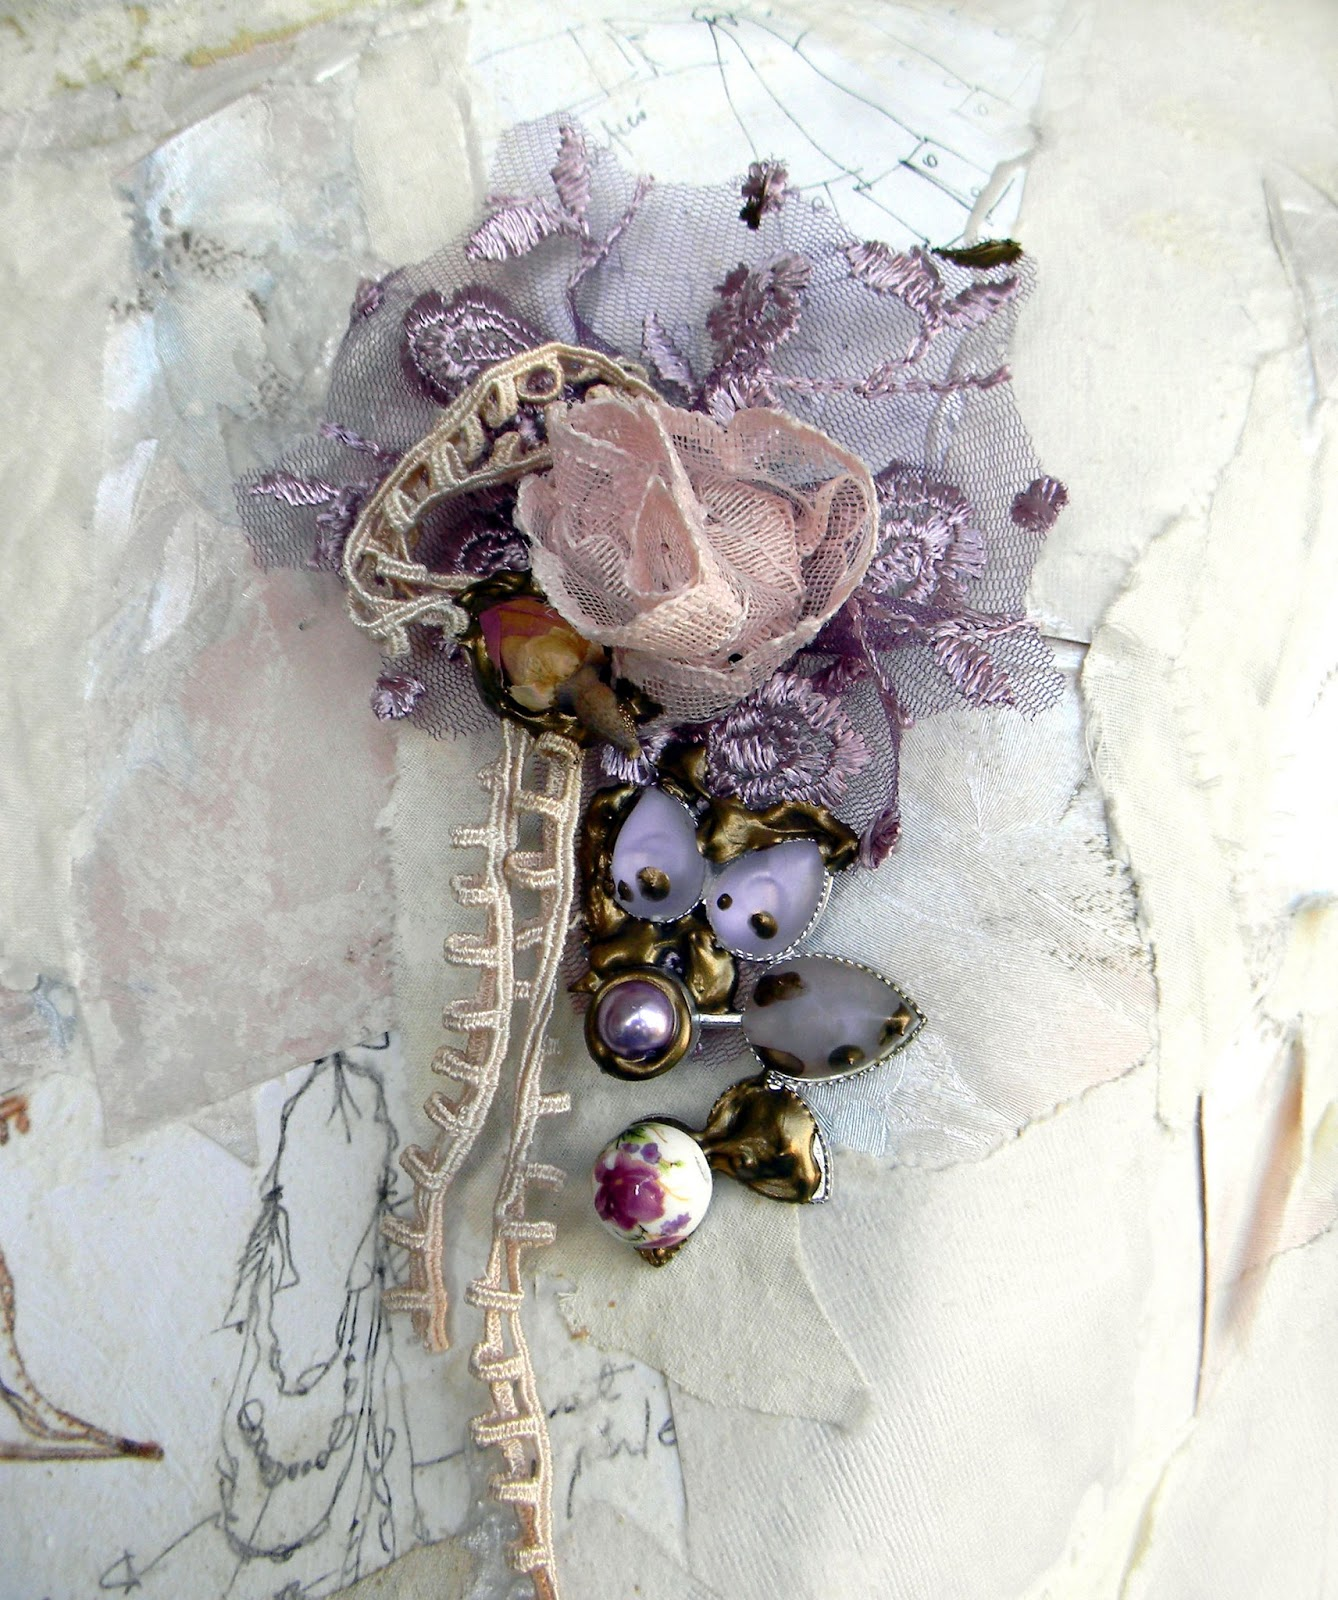 Unique Handcrafted Jewelry Statement Brooch Fashion Jewelry Vintage Shabby